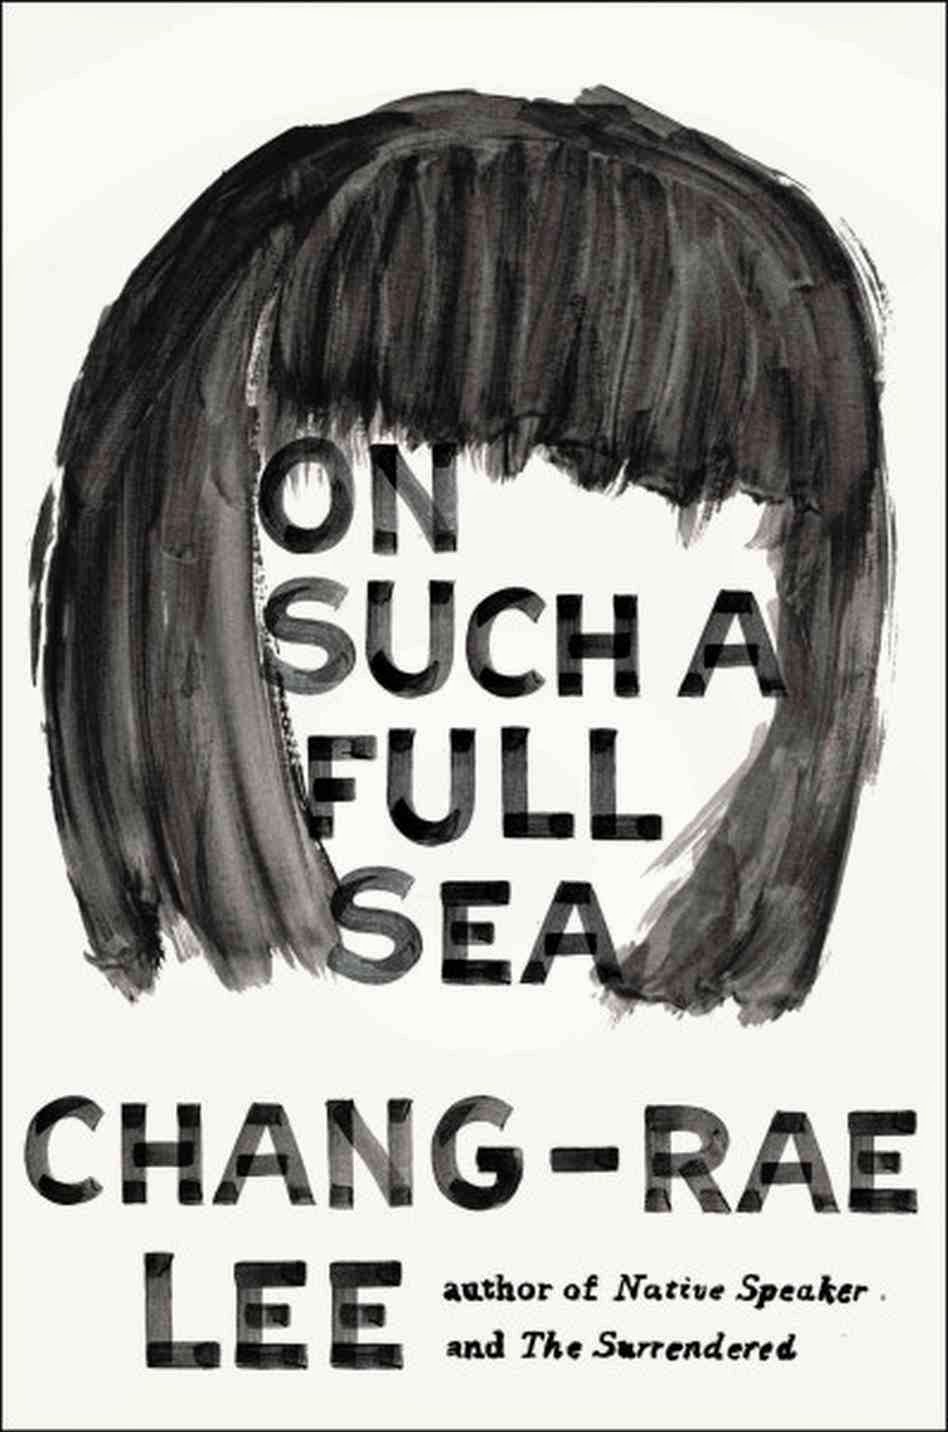 http://discover.halifaxpubliclibraries.ca/?q=title:on%20such%20a%20full%20sea